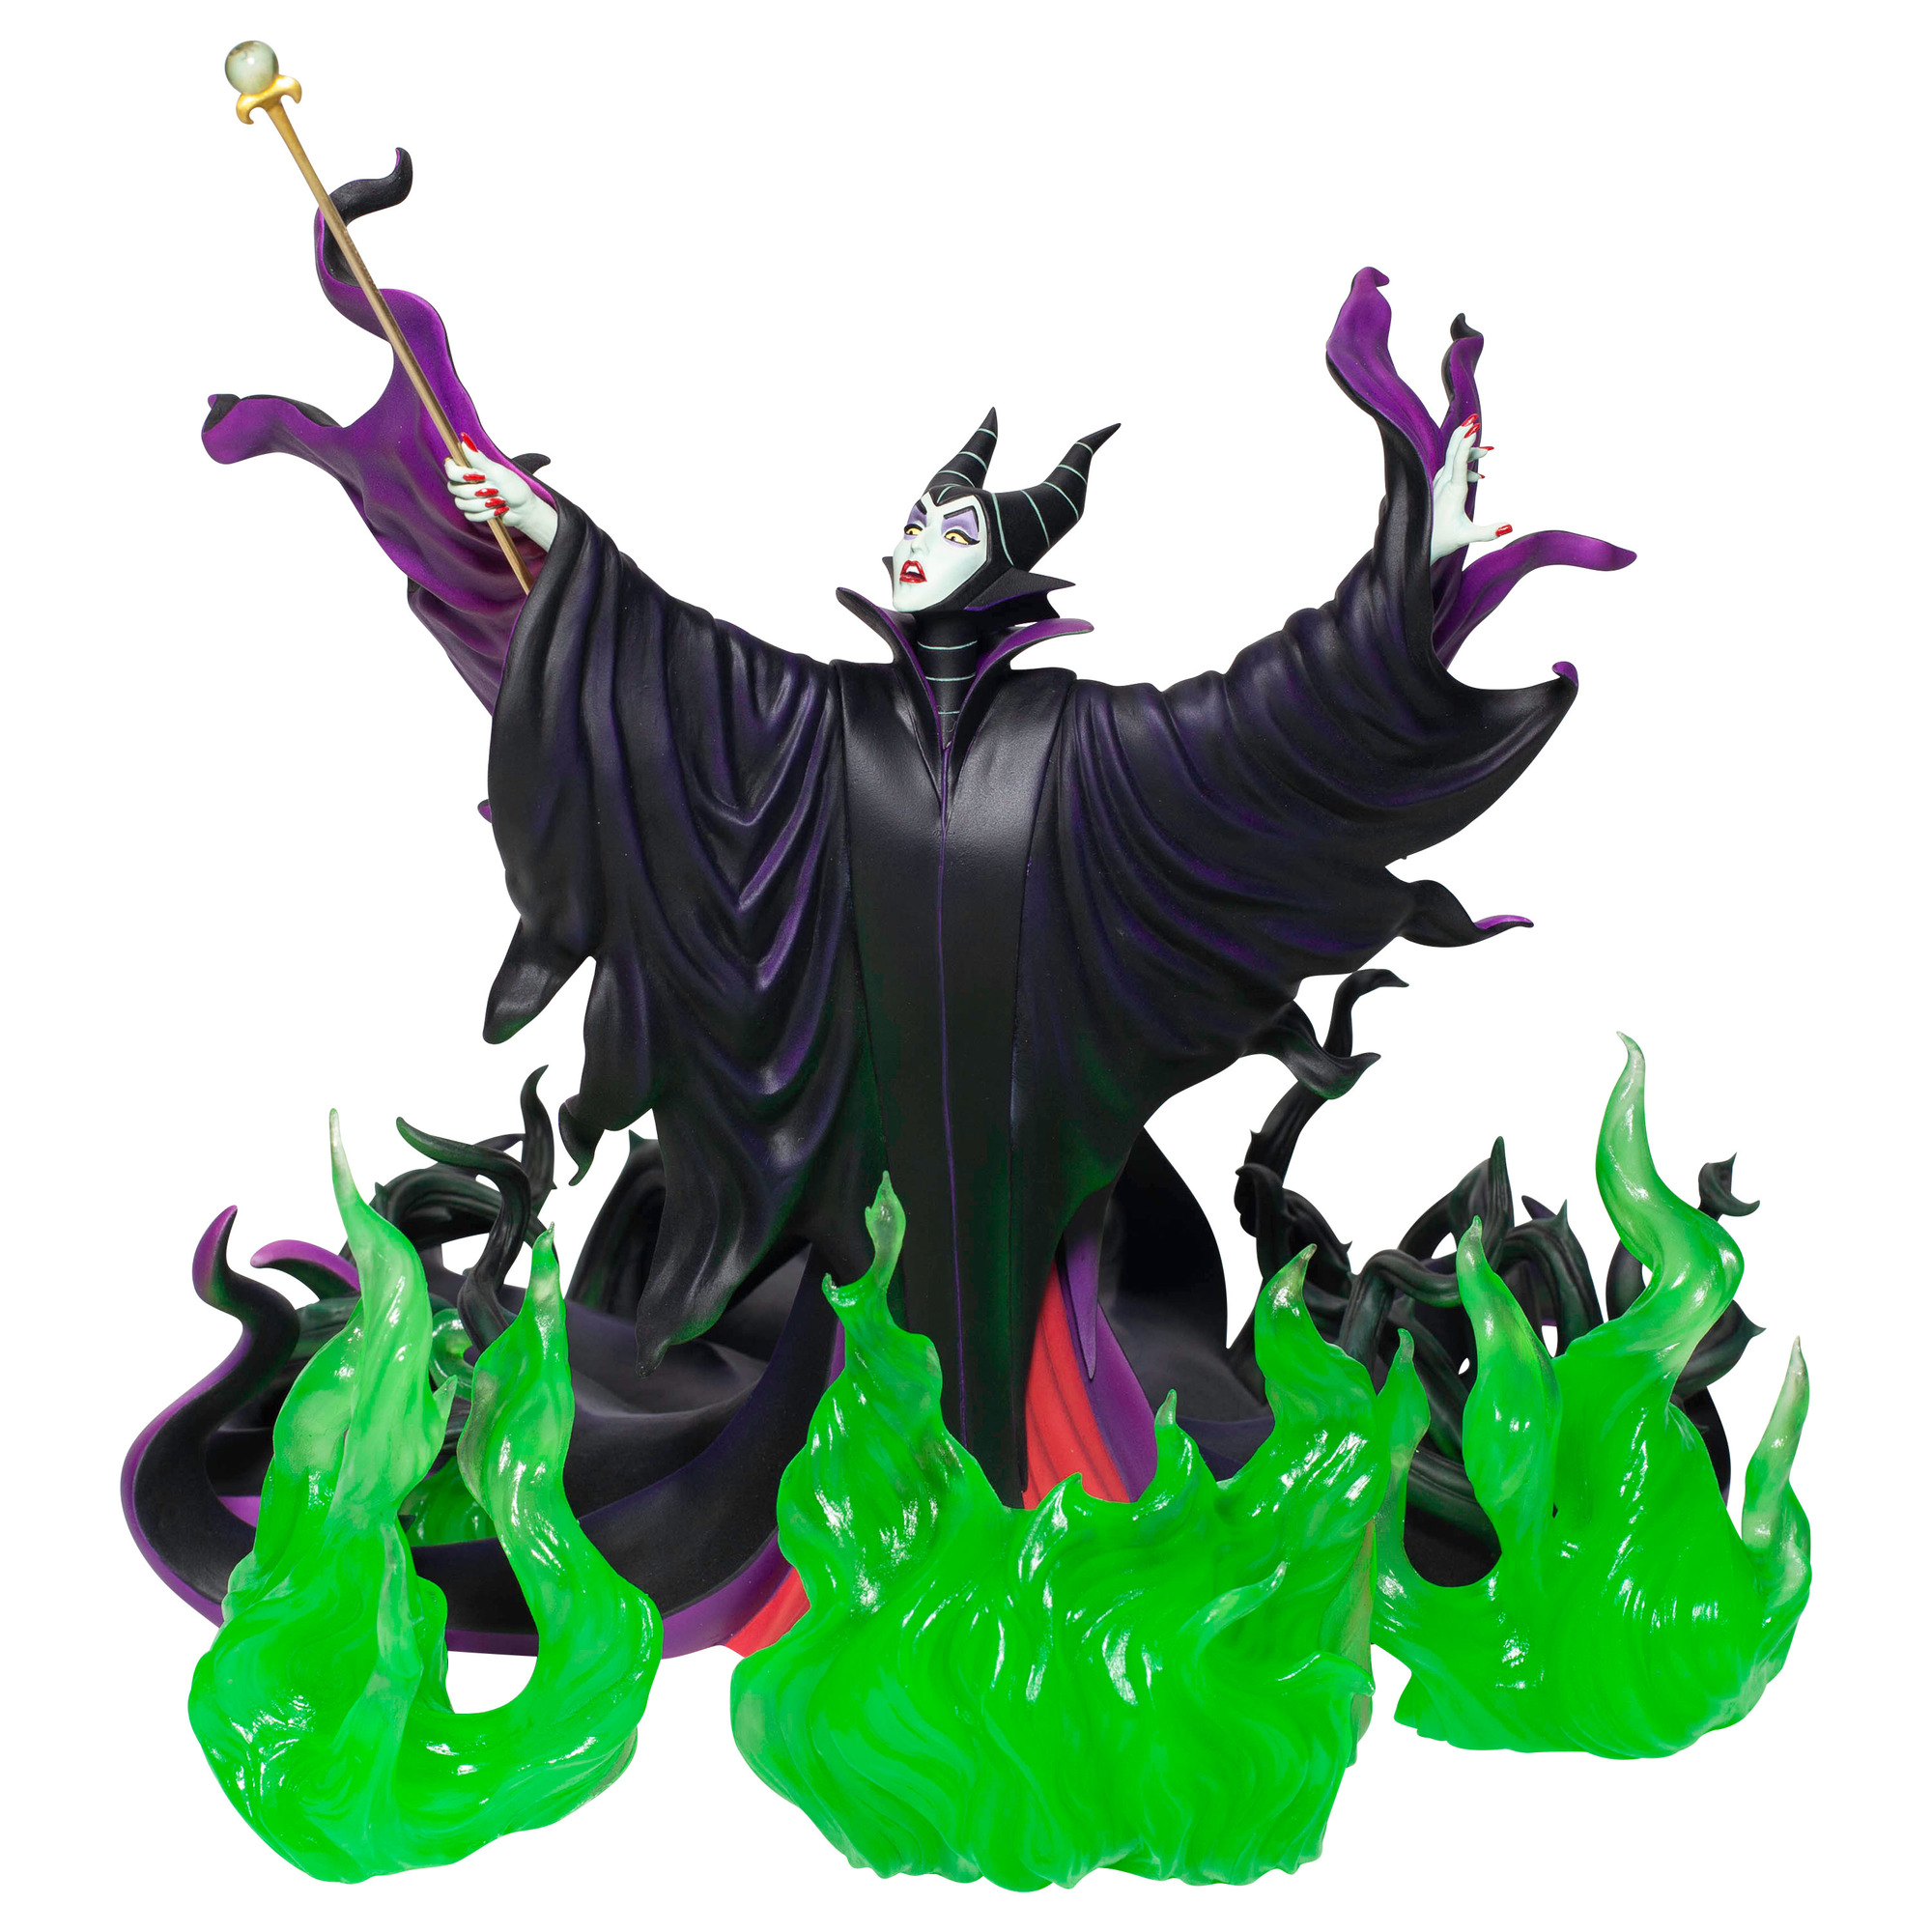 Pre-Order Grand Jester Disney Maleficent Statue